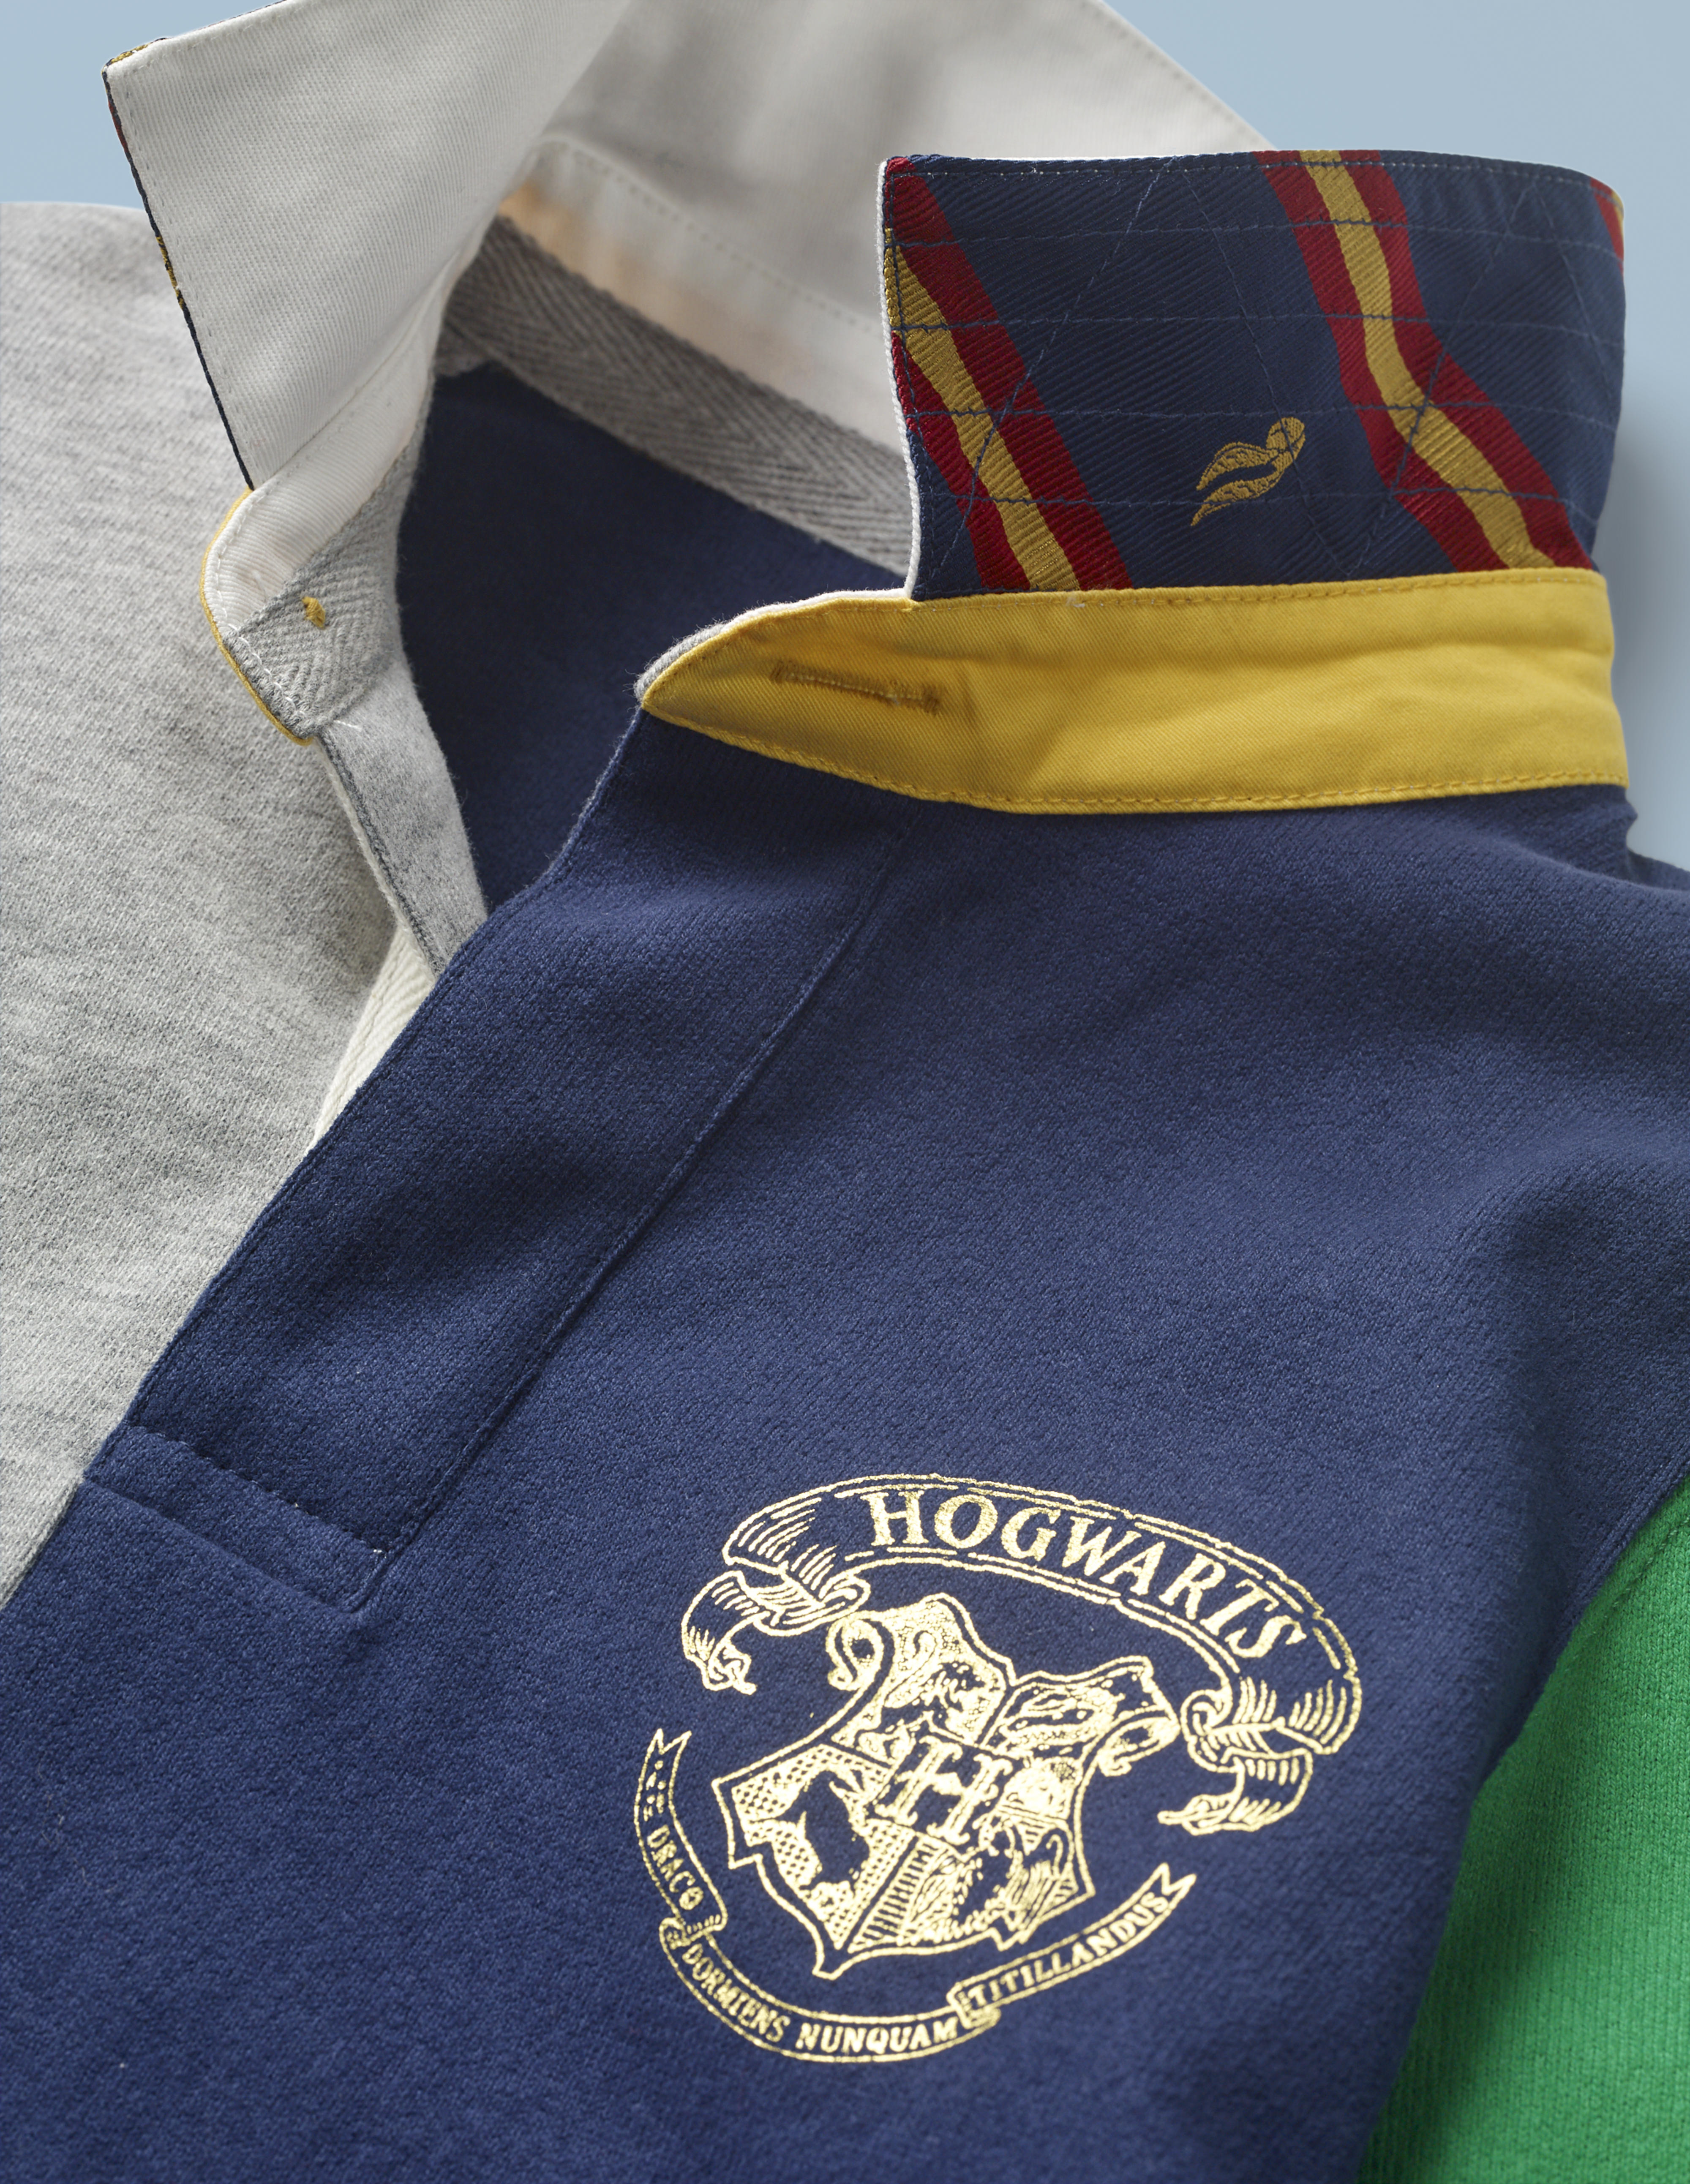 This close-up of the Mini Boden Hogwarts Rugby Shirt, multi-color, provides a better look at the collar design and Hogwarts crest in the front pocket area. It retails at £30.